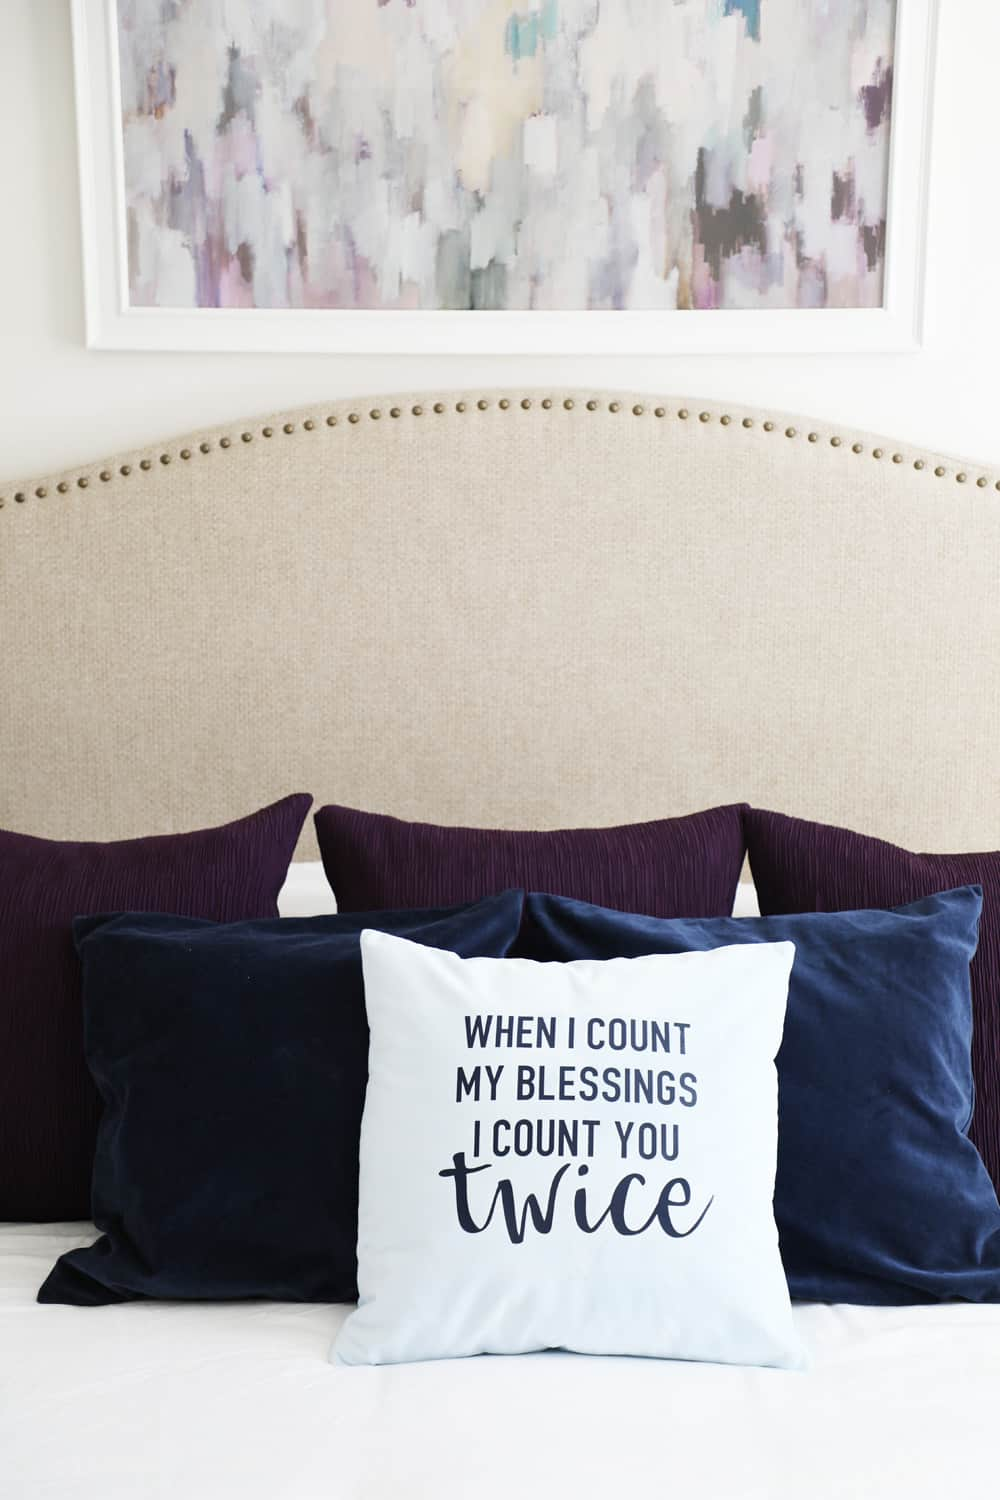 count you twice fall pillow on bed in front of two navy and three purple pillows